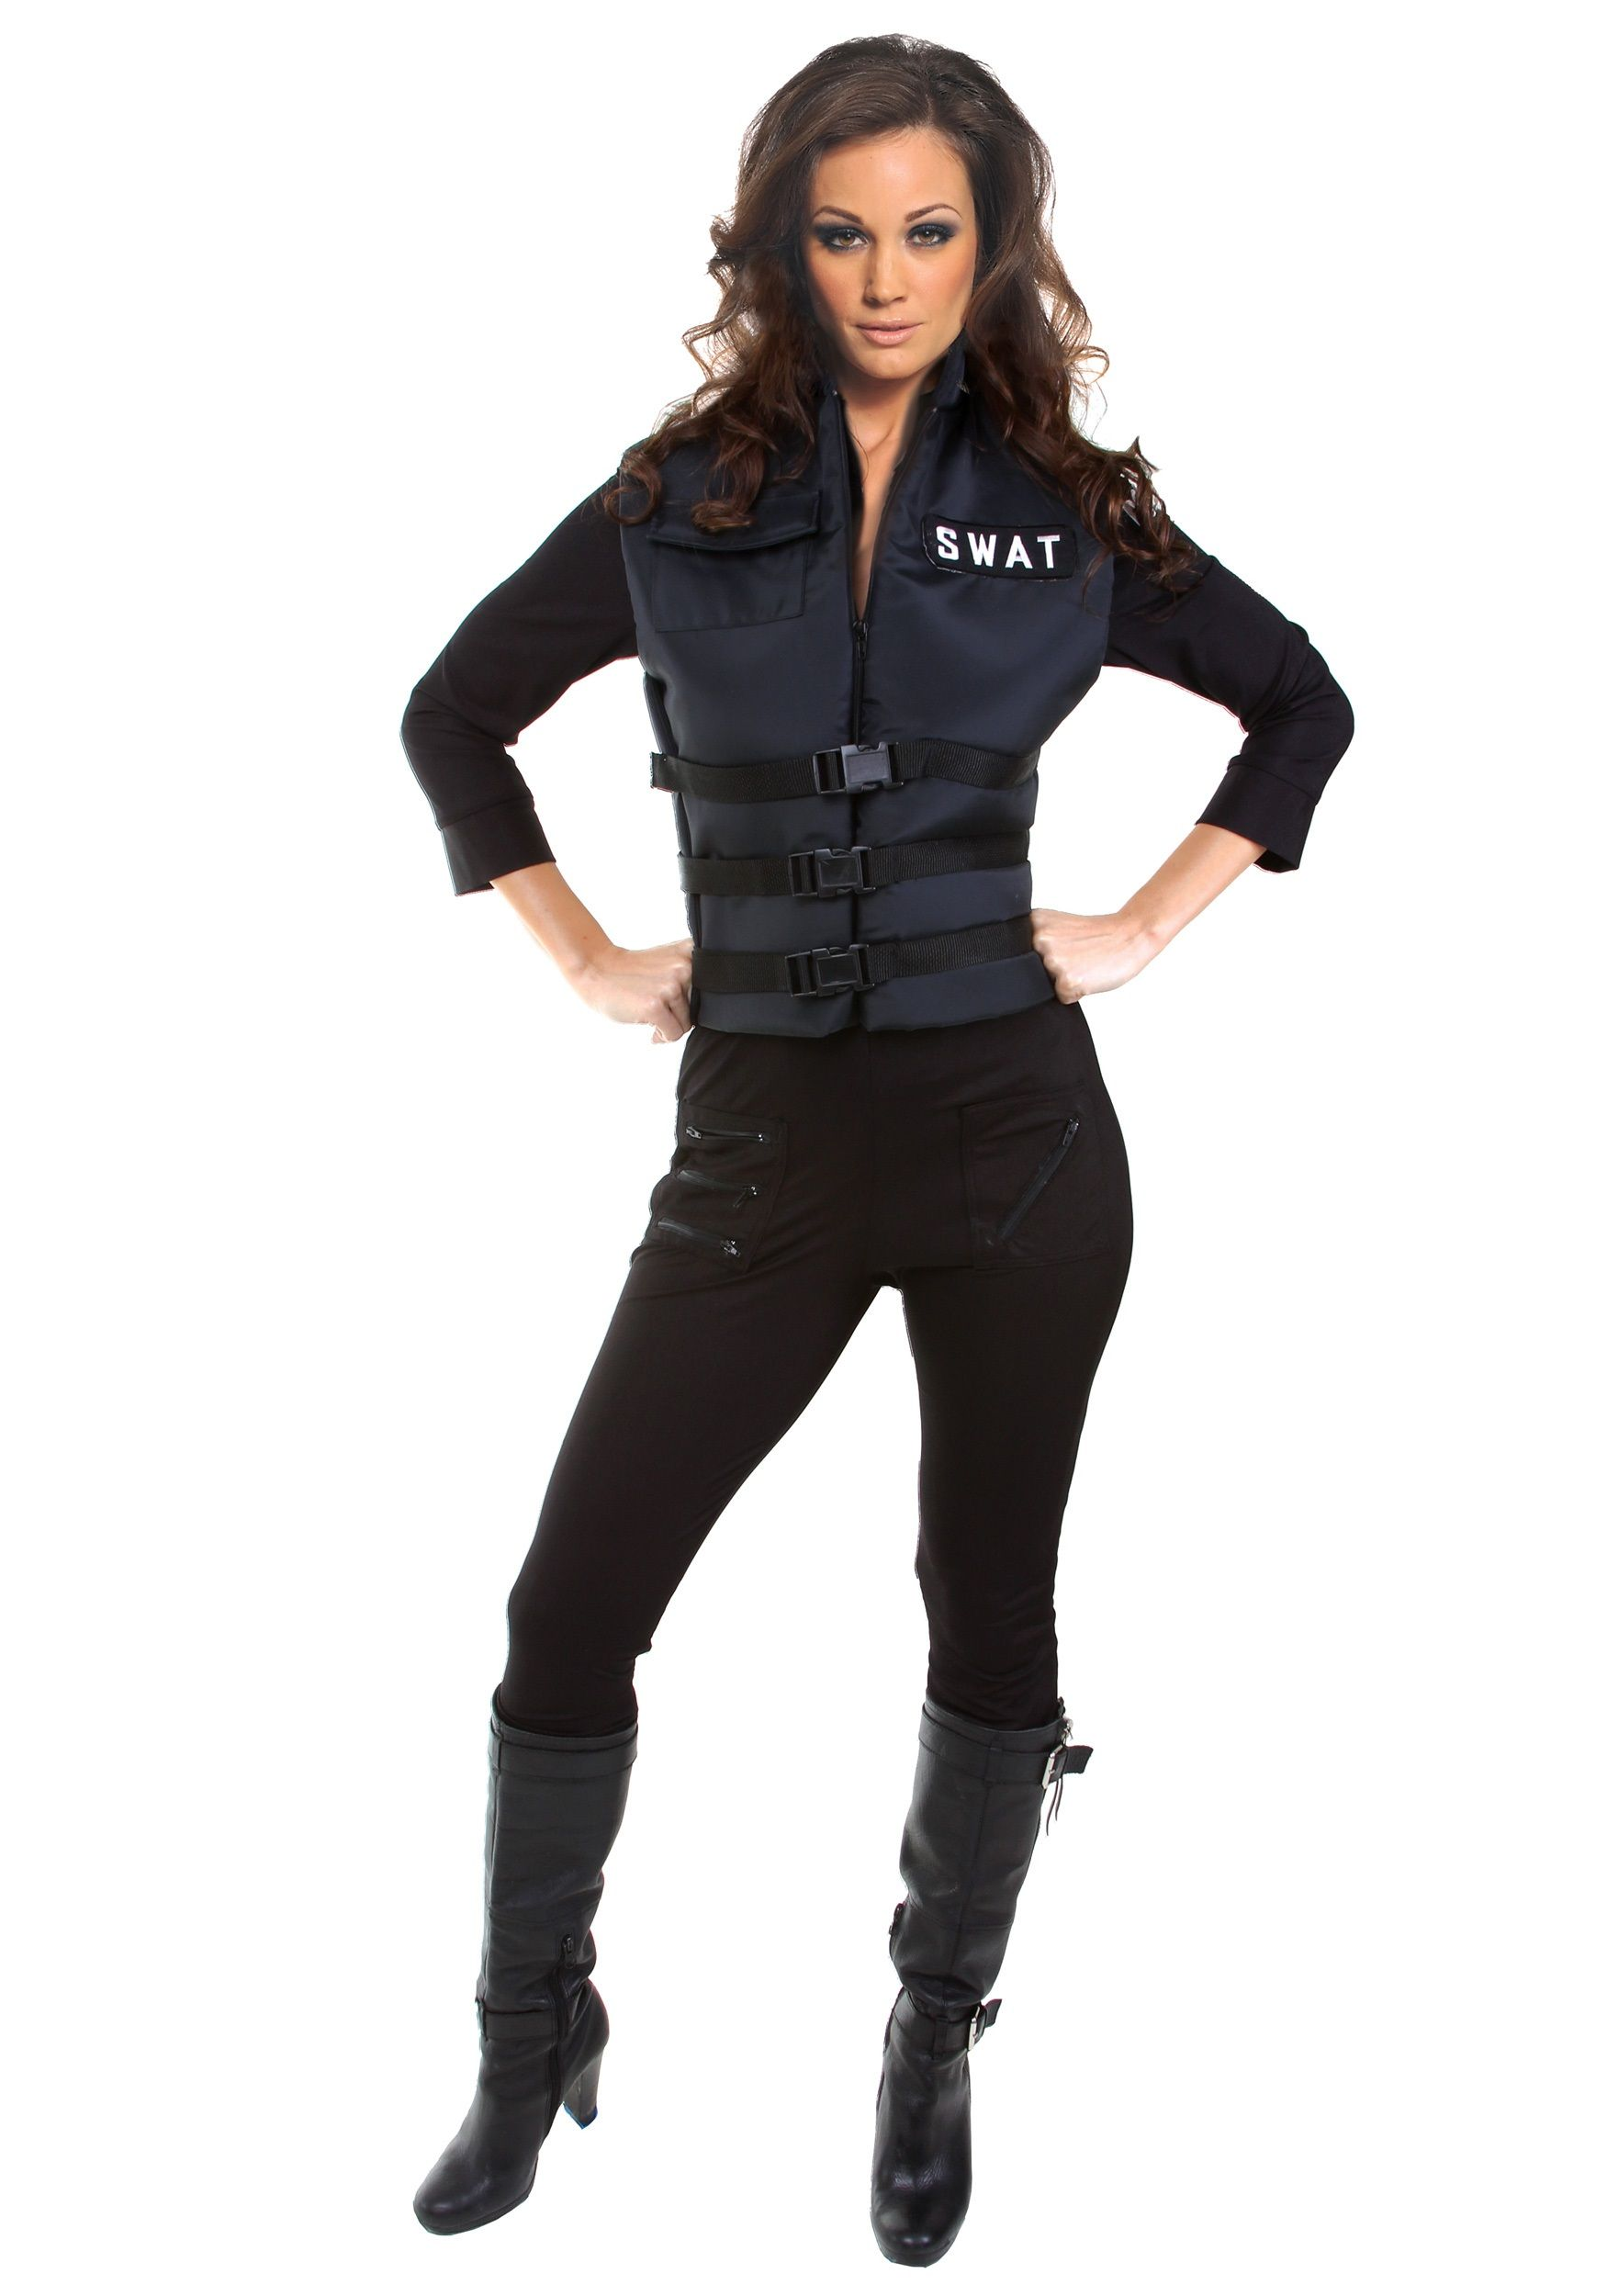 Beautiful Free Shipping Adult Woman Halloween Costumes Swat Jumpsuit Catsuit For Secret Service Women Sexy Lingerie Policewomen Back To Search Resultshome